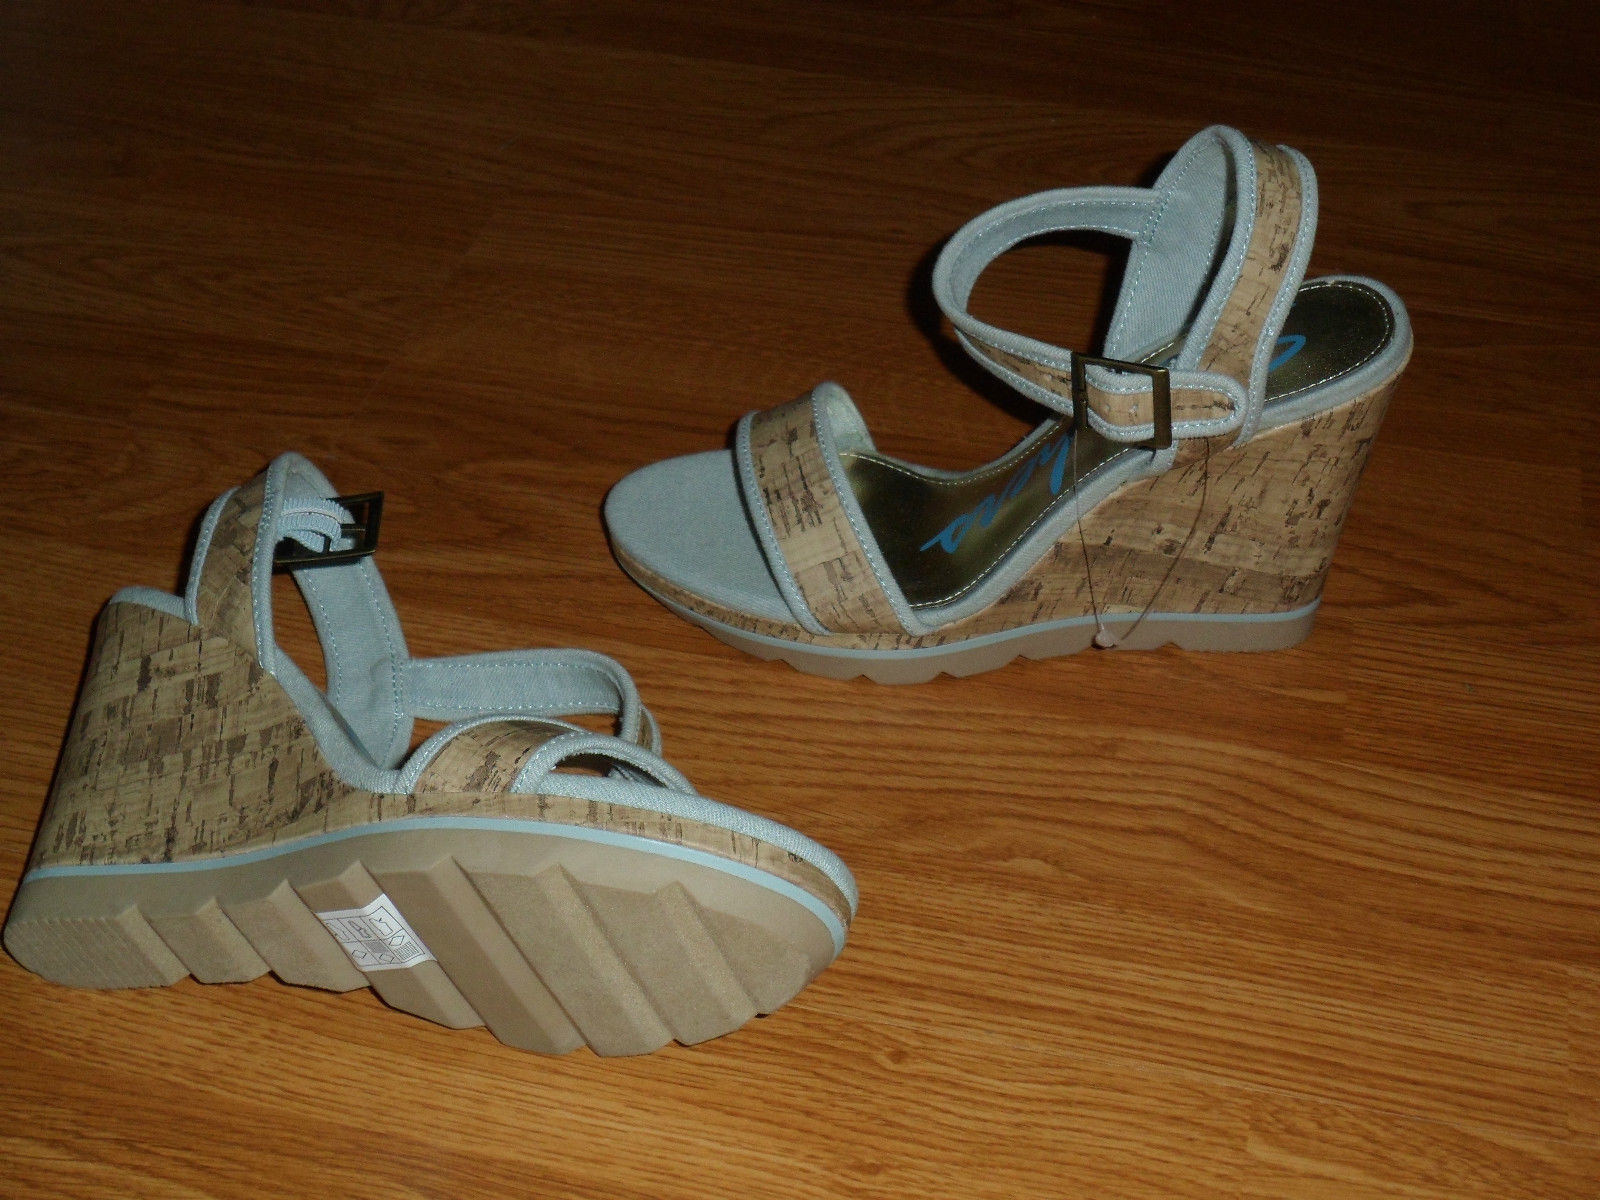 SKECHERS WEDGE HEELS SIZE 9 STRAPPY ANKLE STRAP SANDALS BLUE NWT